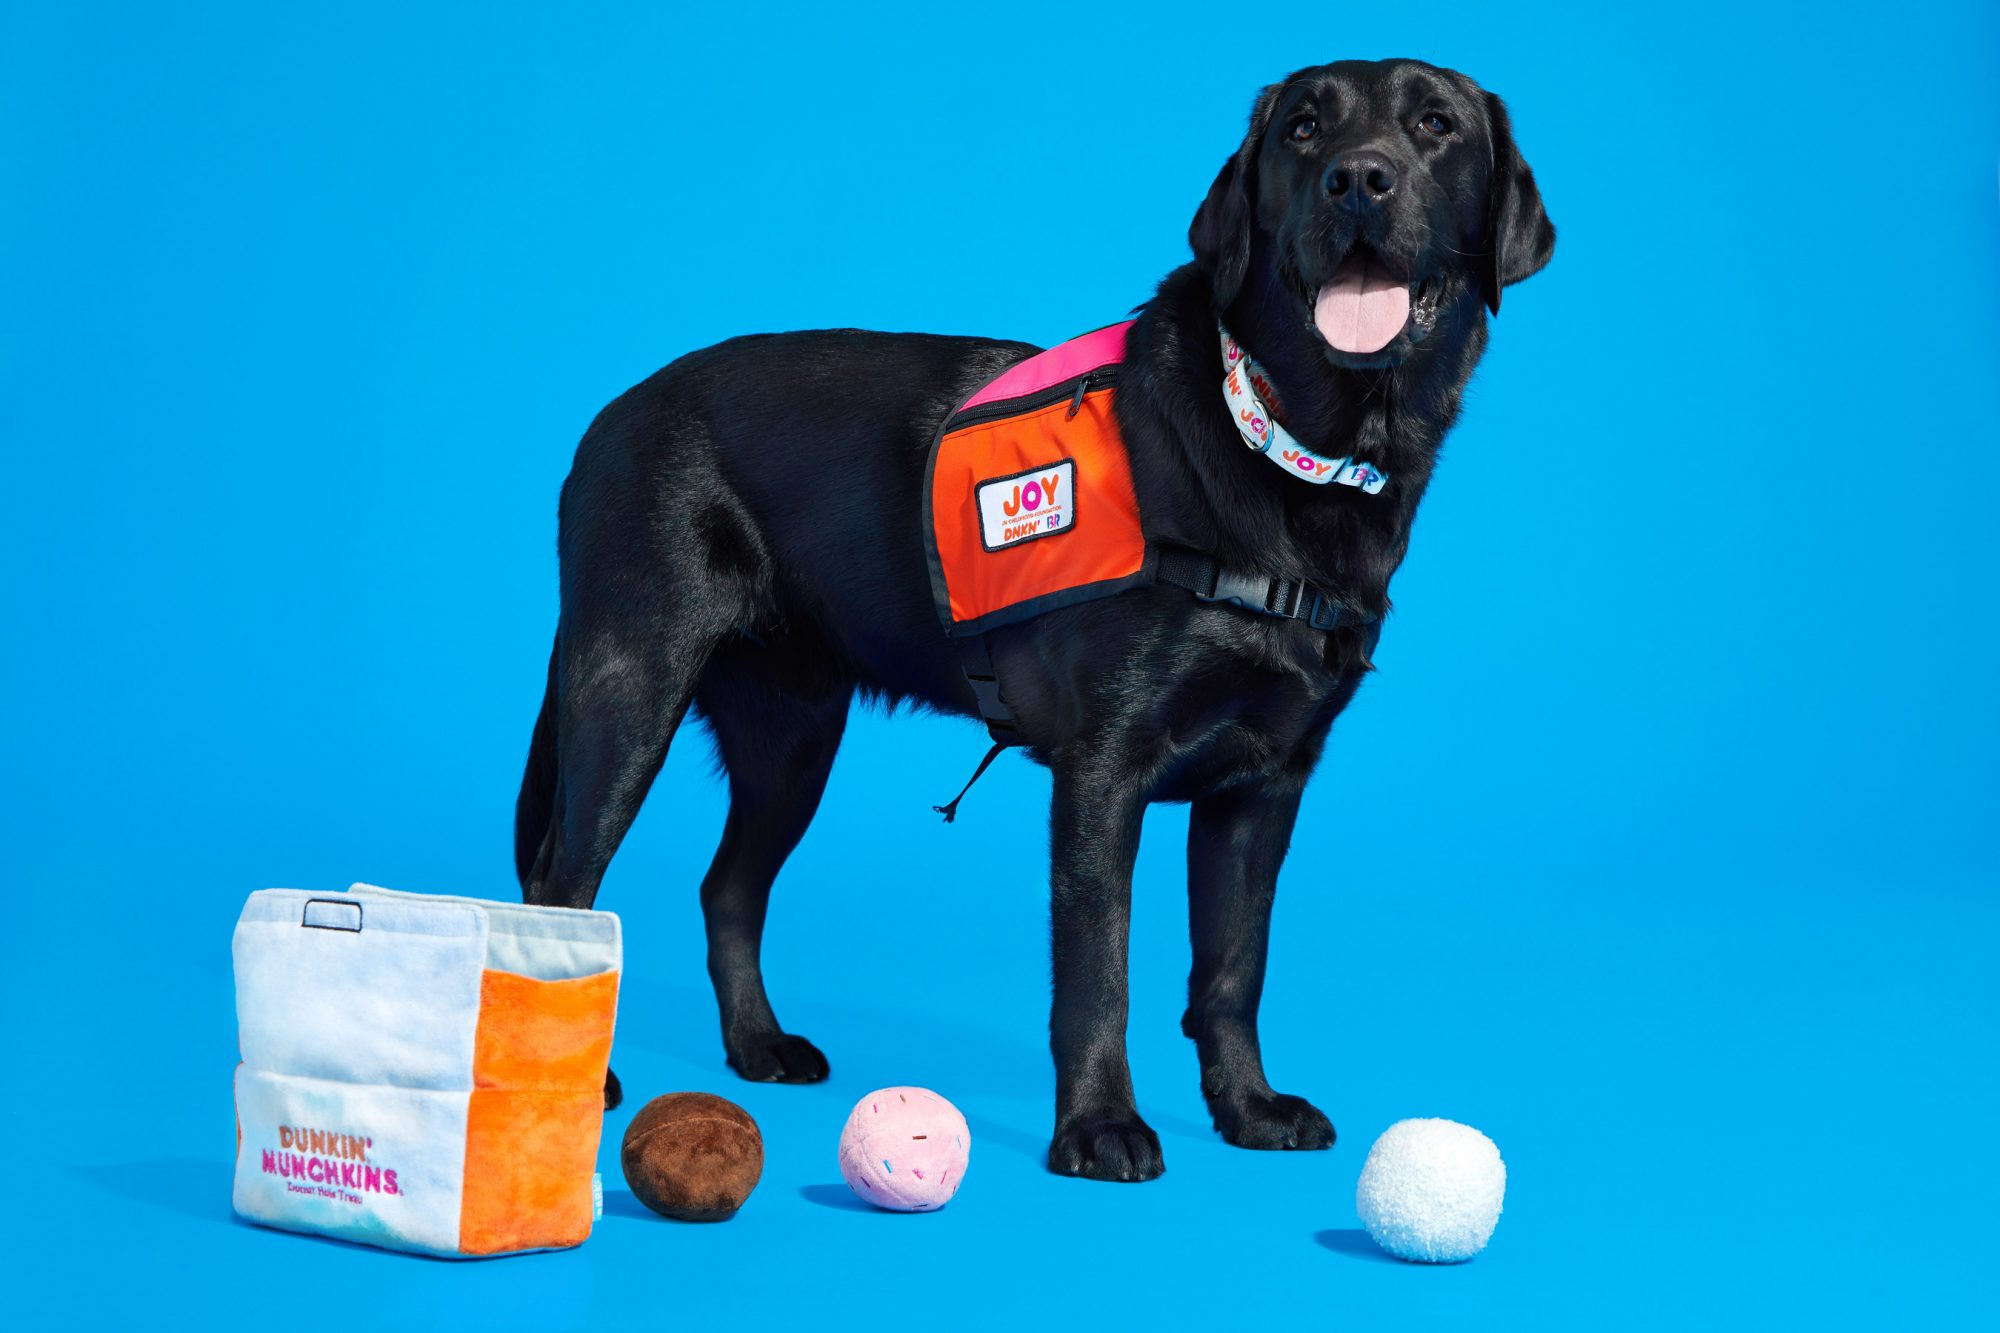 Black lab with Dunkin' dog toys and little backpack thing